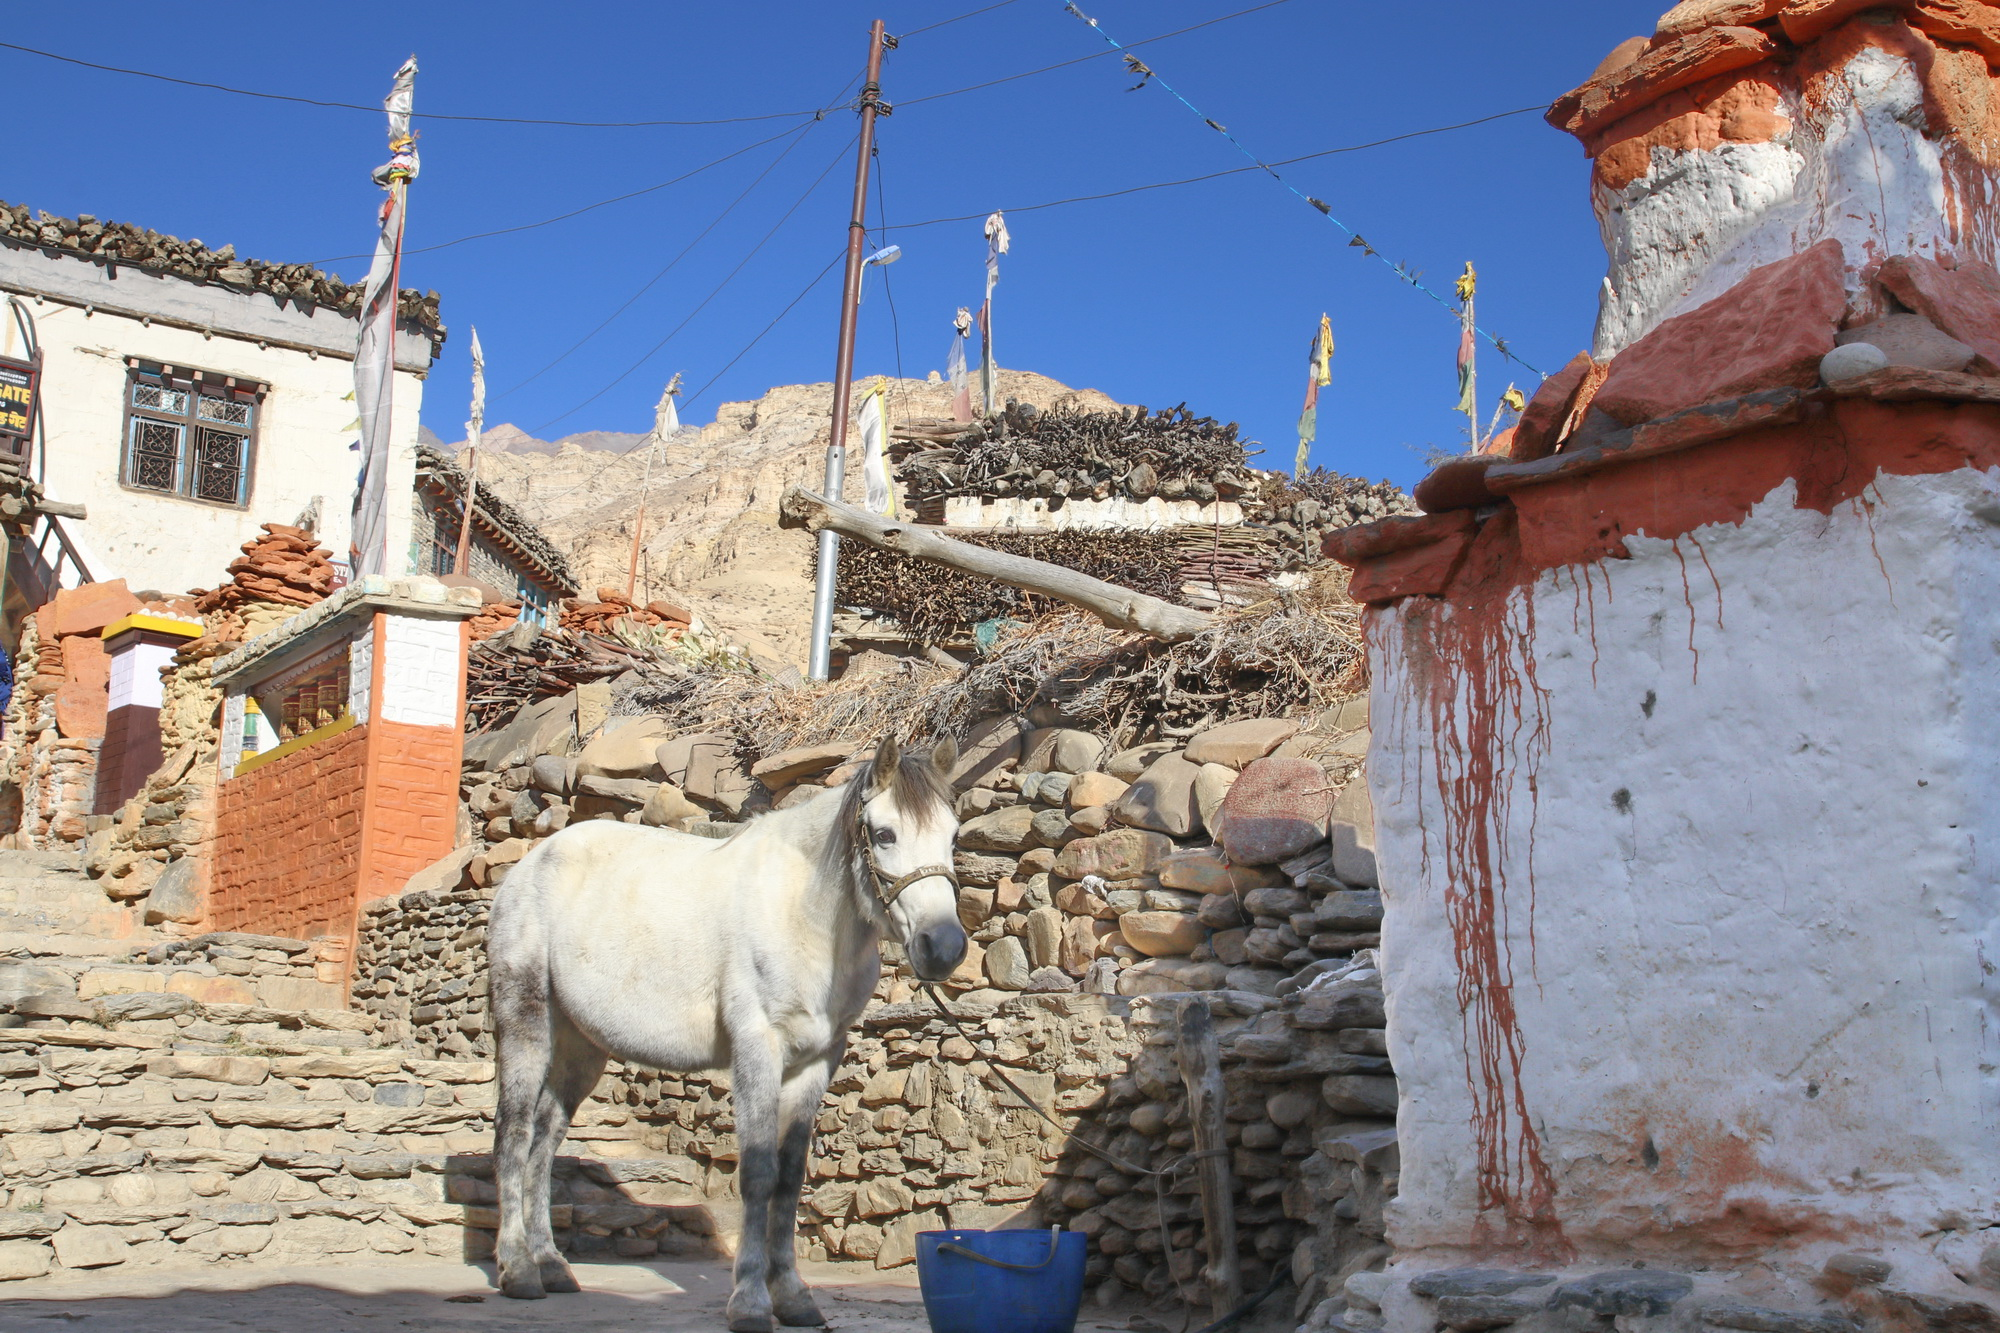 Tesel village in Upper Mustang on day two